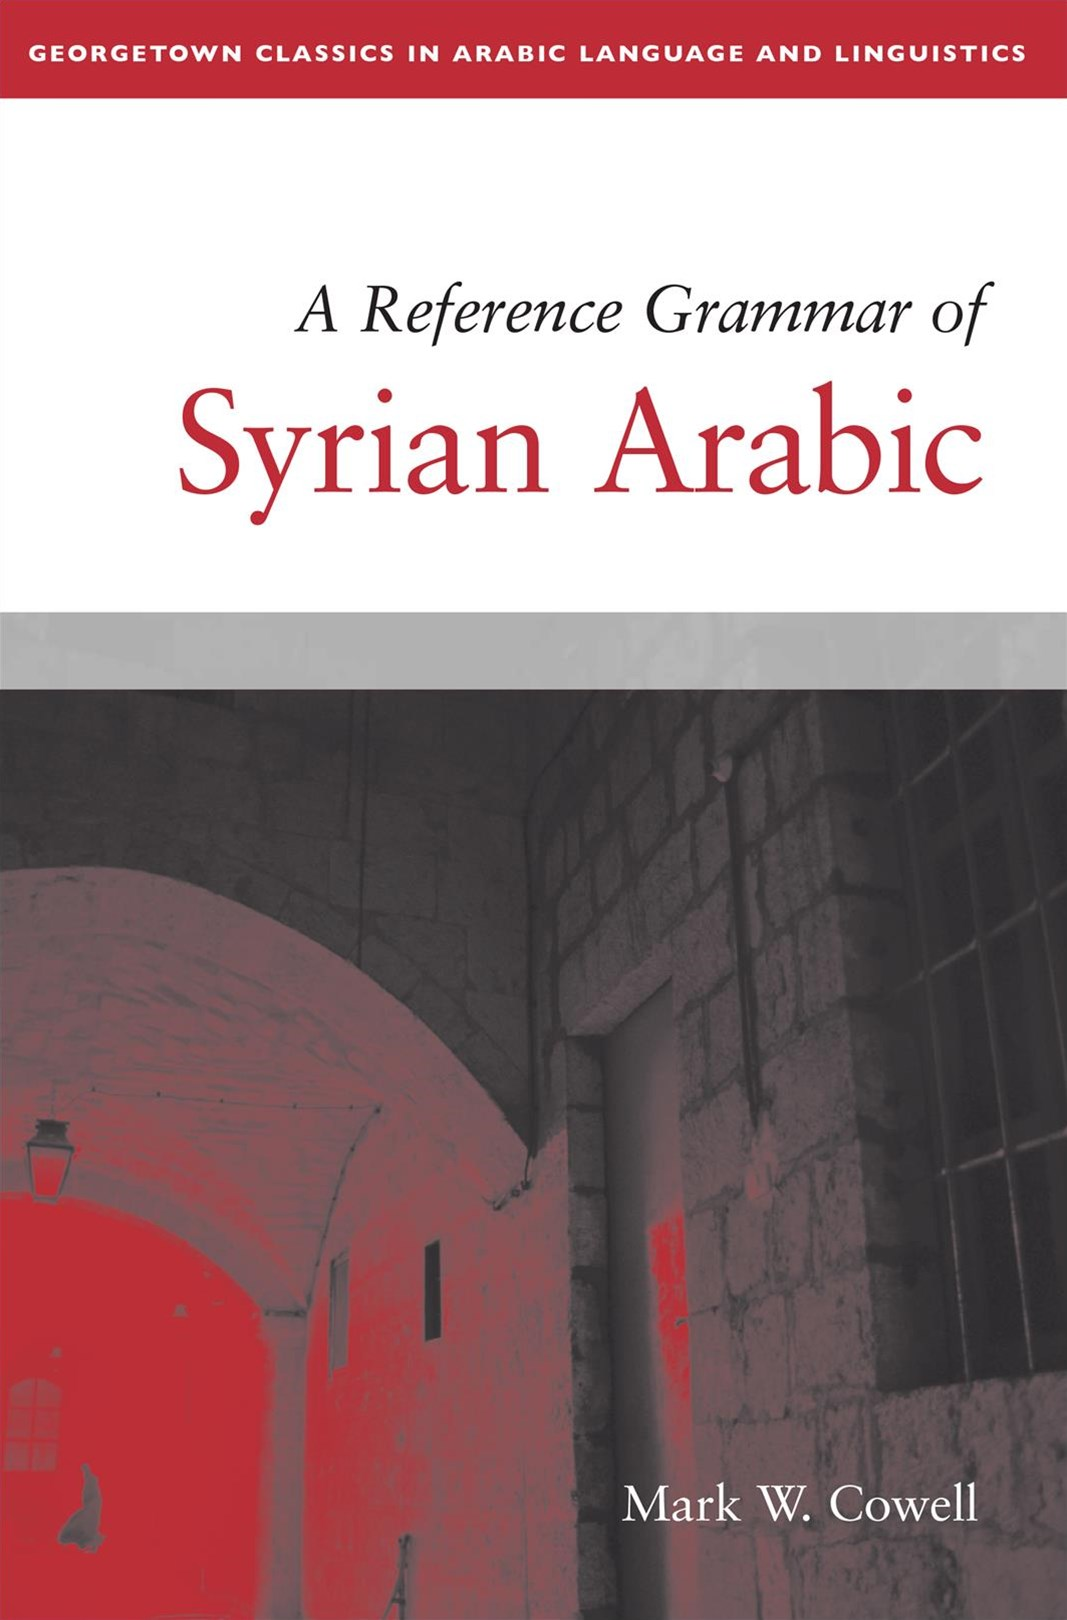 A Reference Grammar of Syrian Arabic